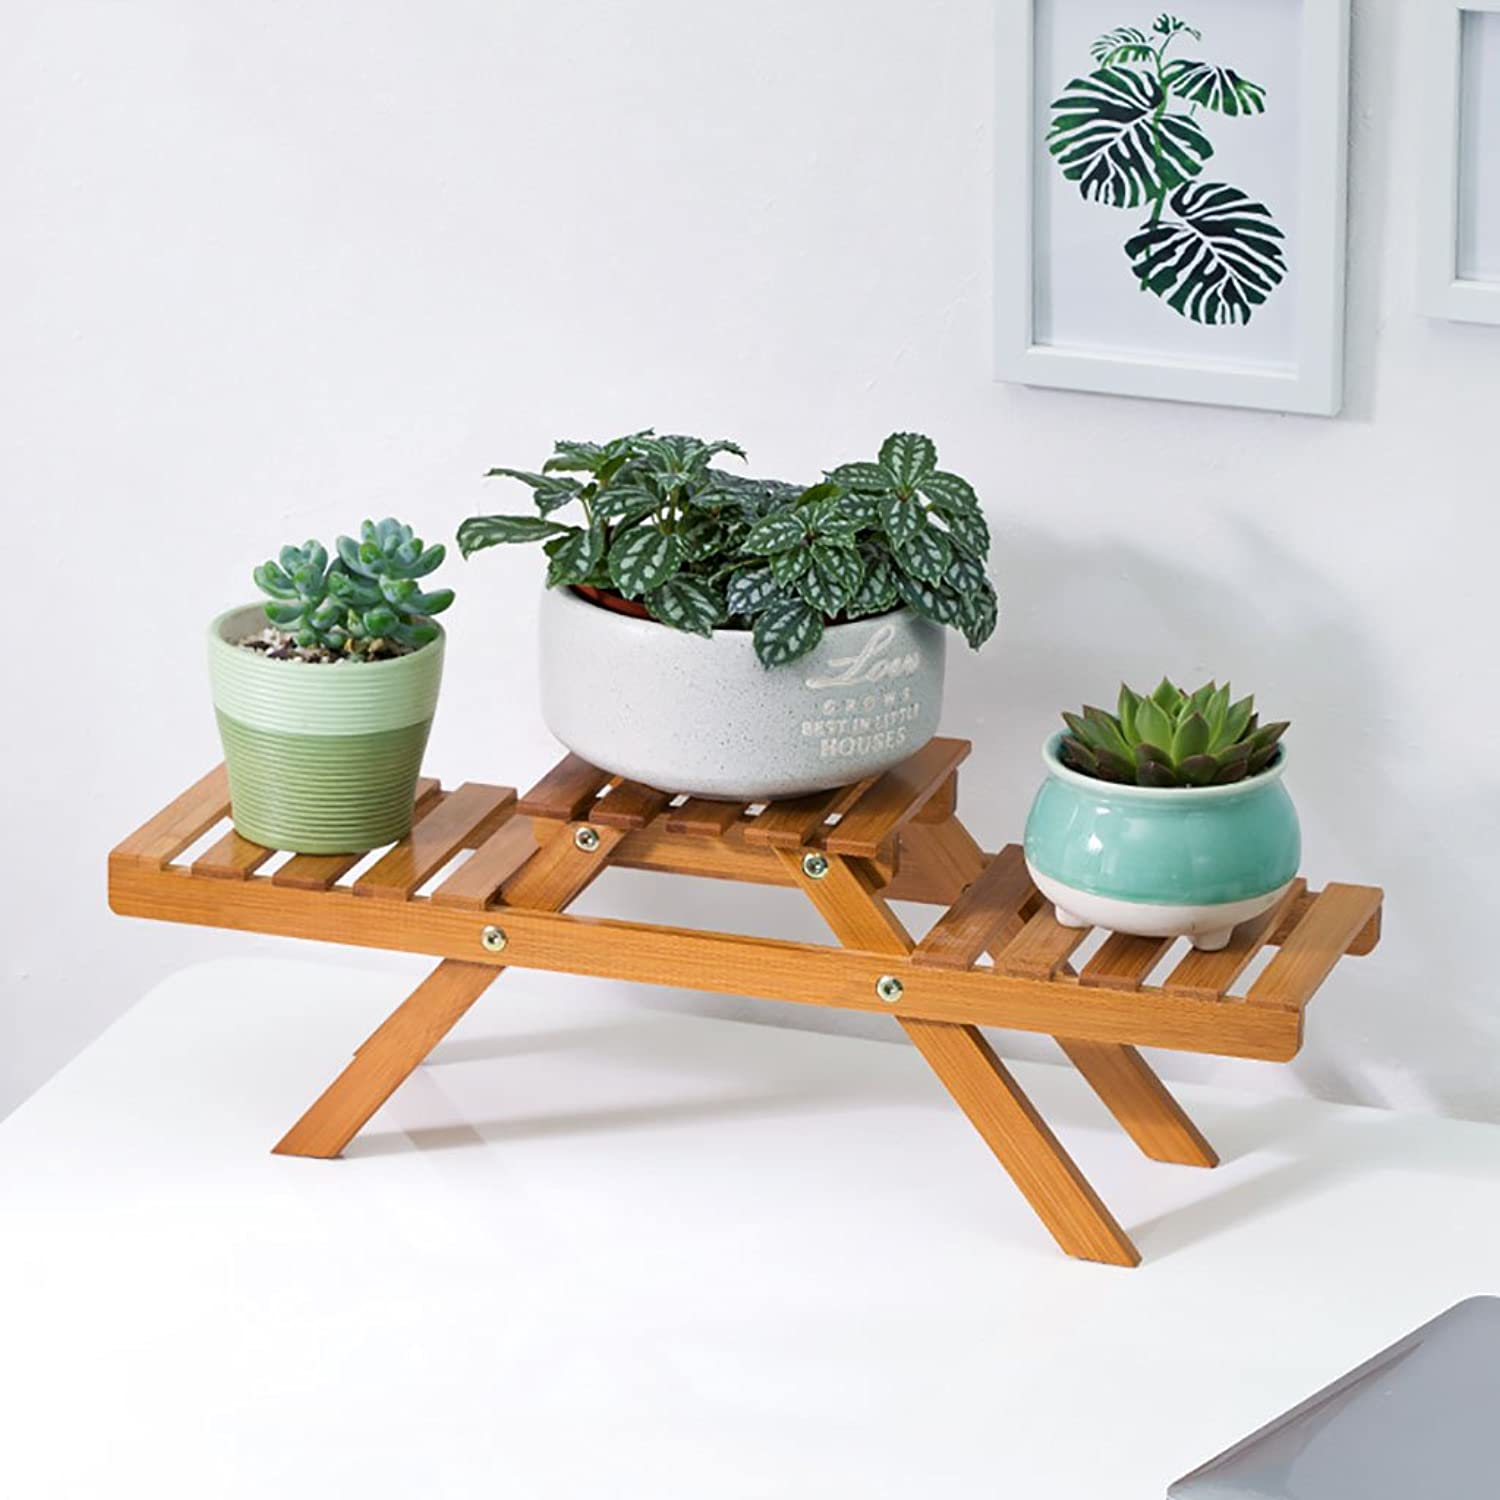 Solid Wood Flower Racks Creative Platform Office Decoration Flower Stand Decoration Racks Plant Shelves Solid Wood Flower Racks